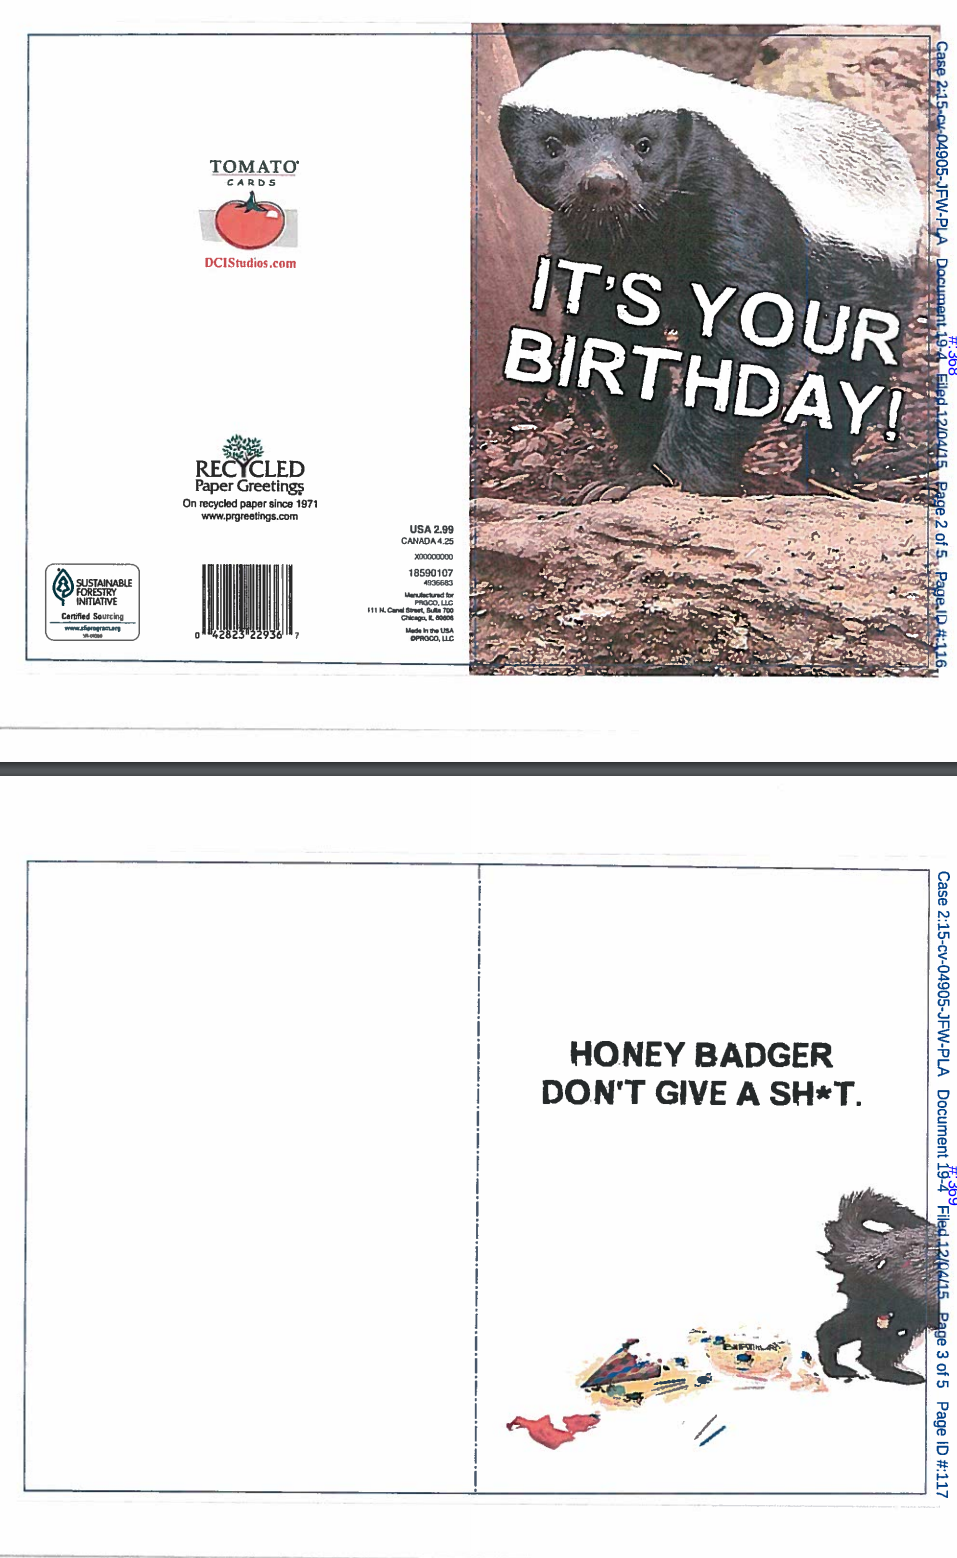 honey badger birthday